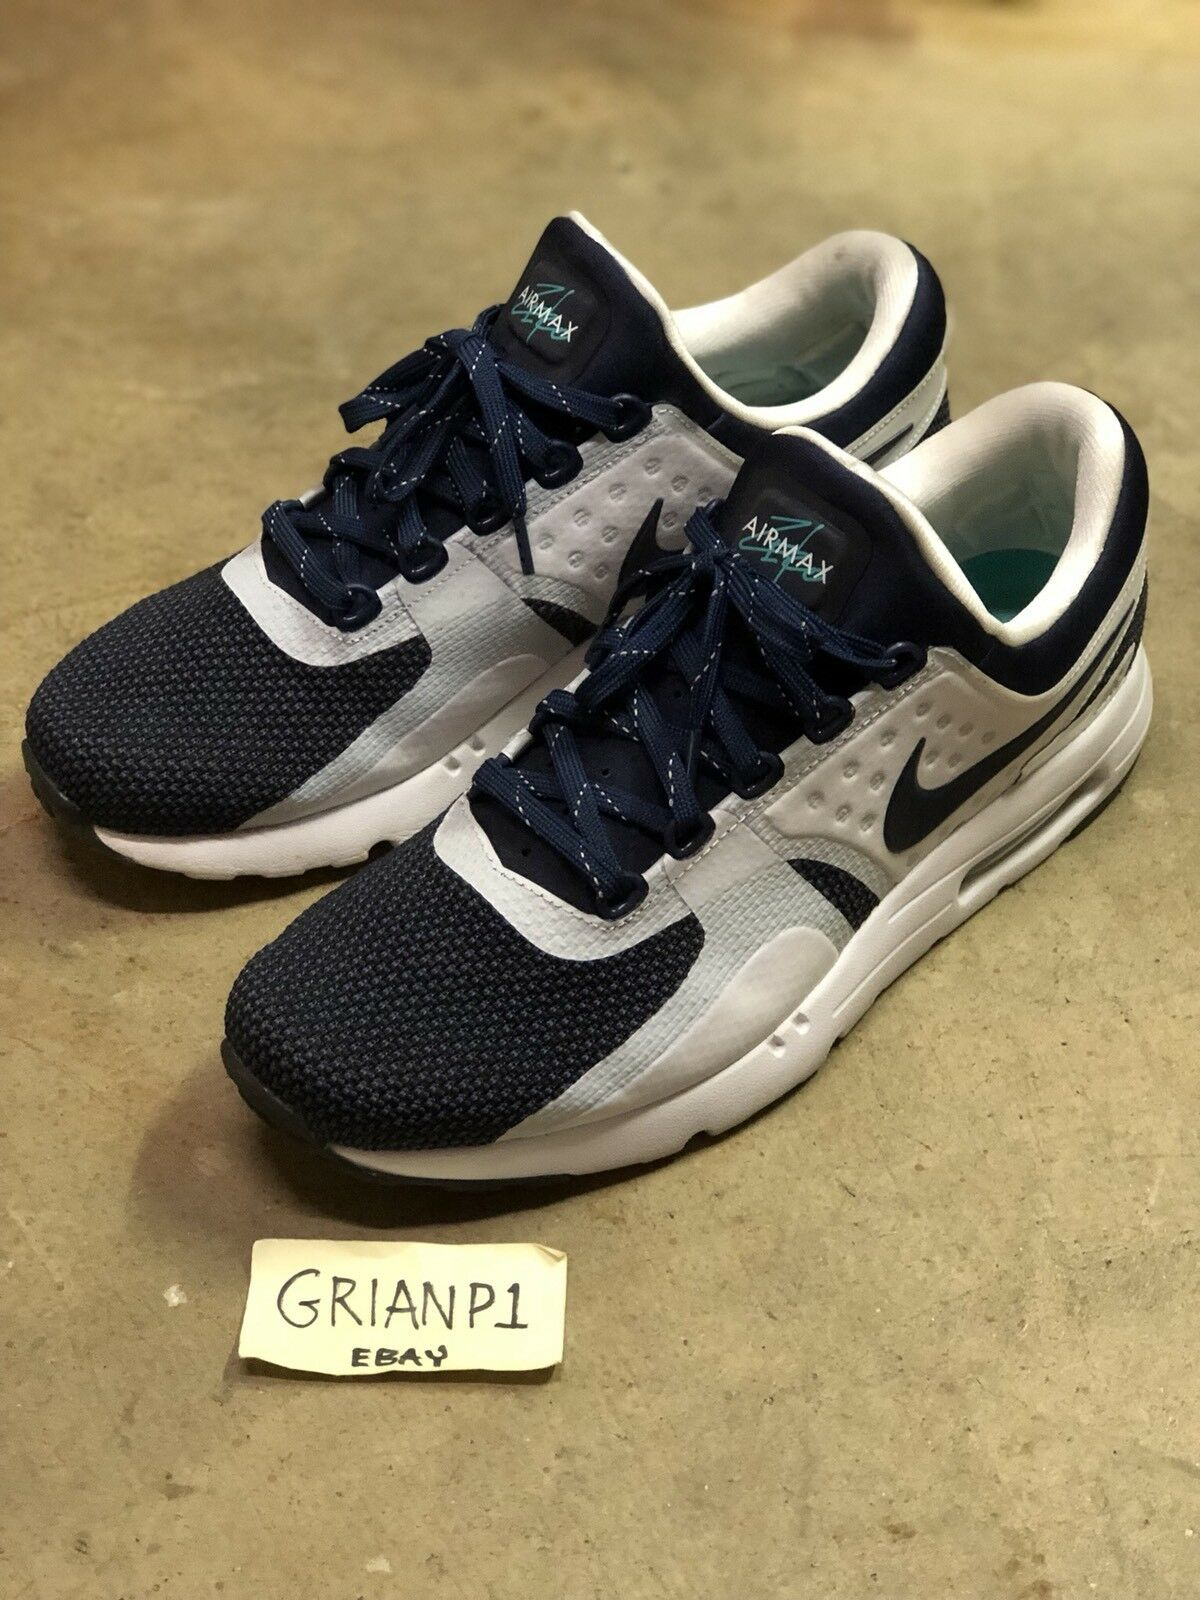 Nike Air Max Zero QS 789695-104 OG Size 10.5 Tinker Hatfield White Midnight Navy